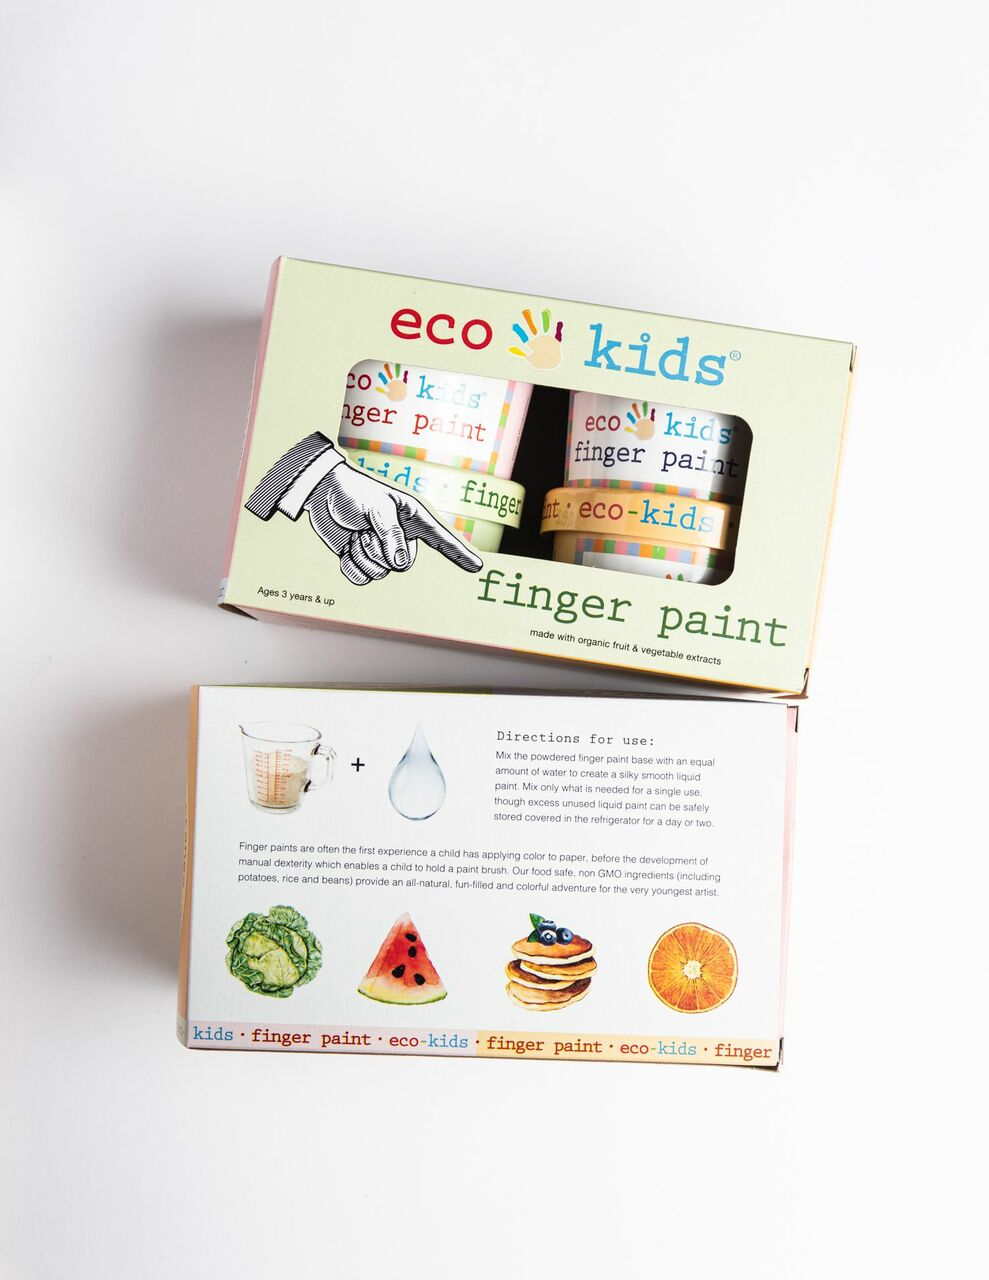 Eco-Kids Finger Paint